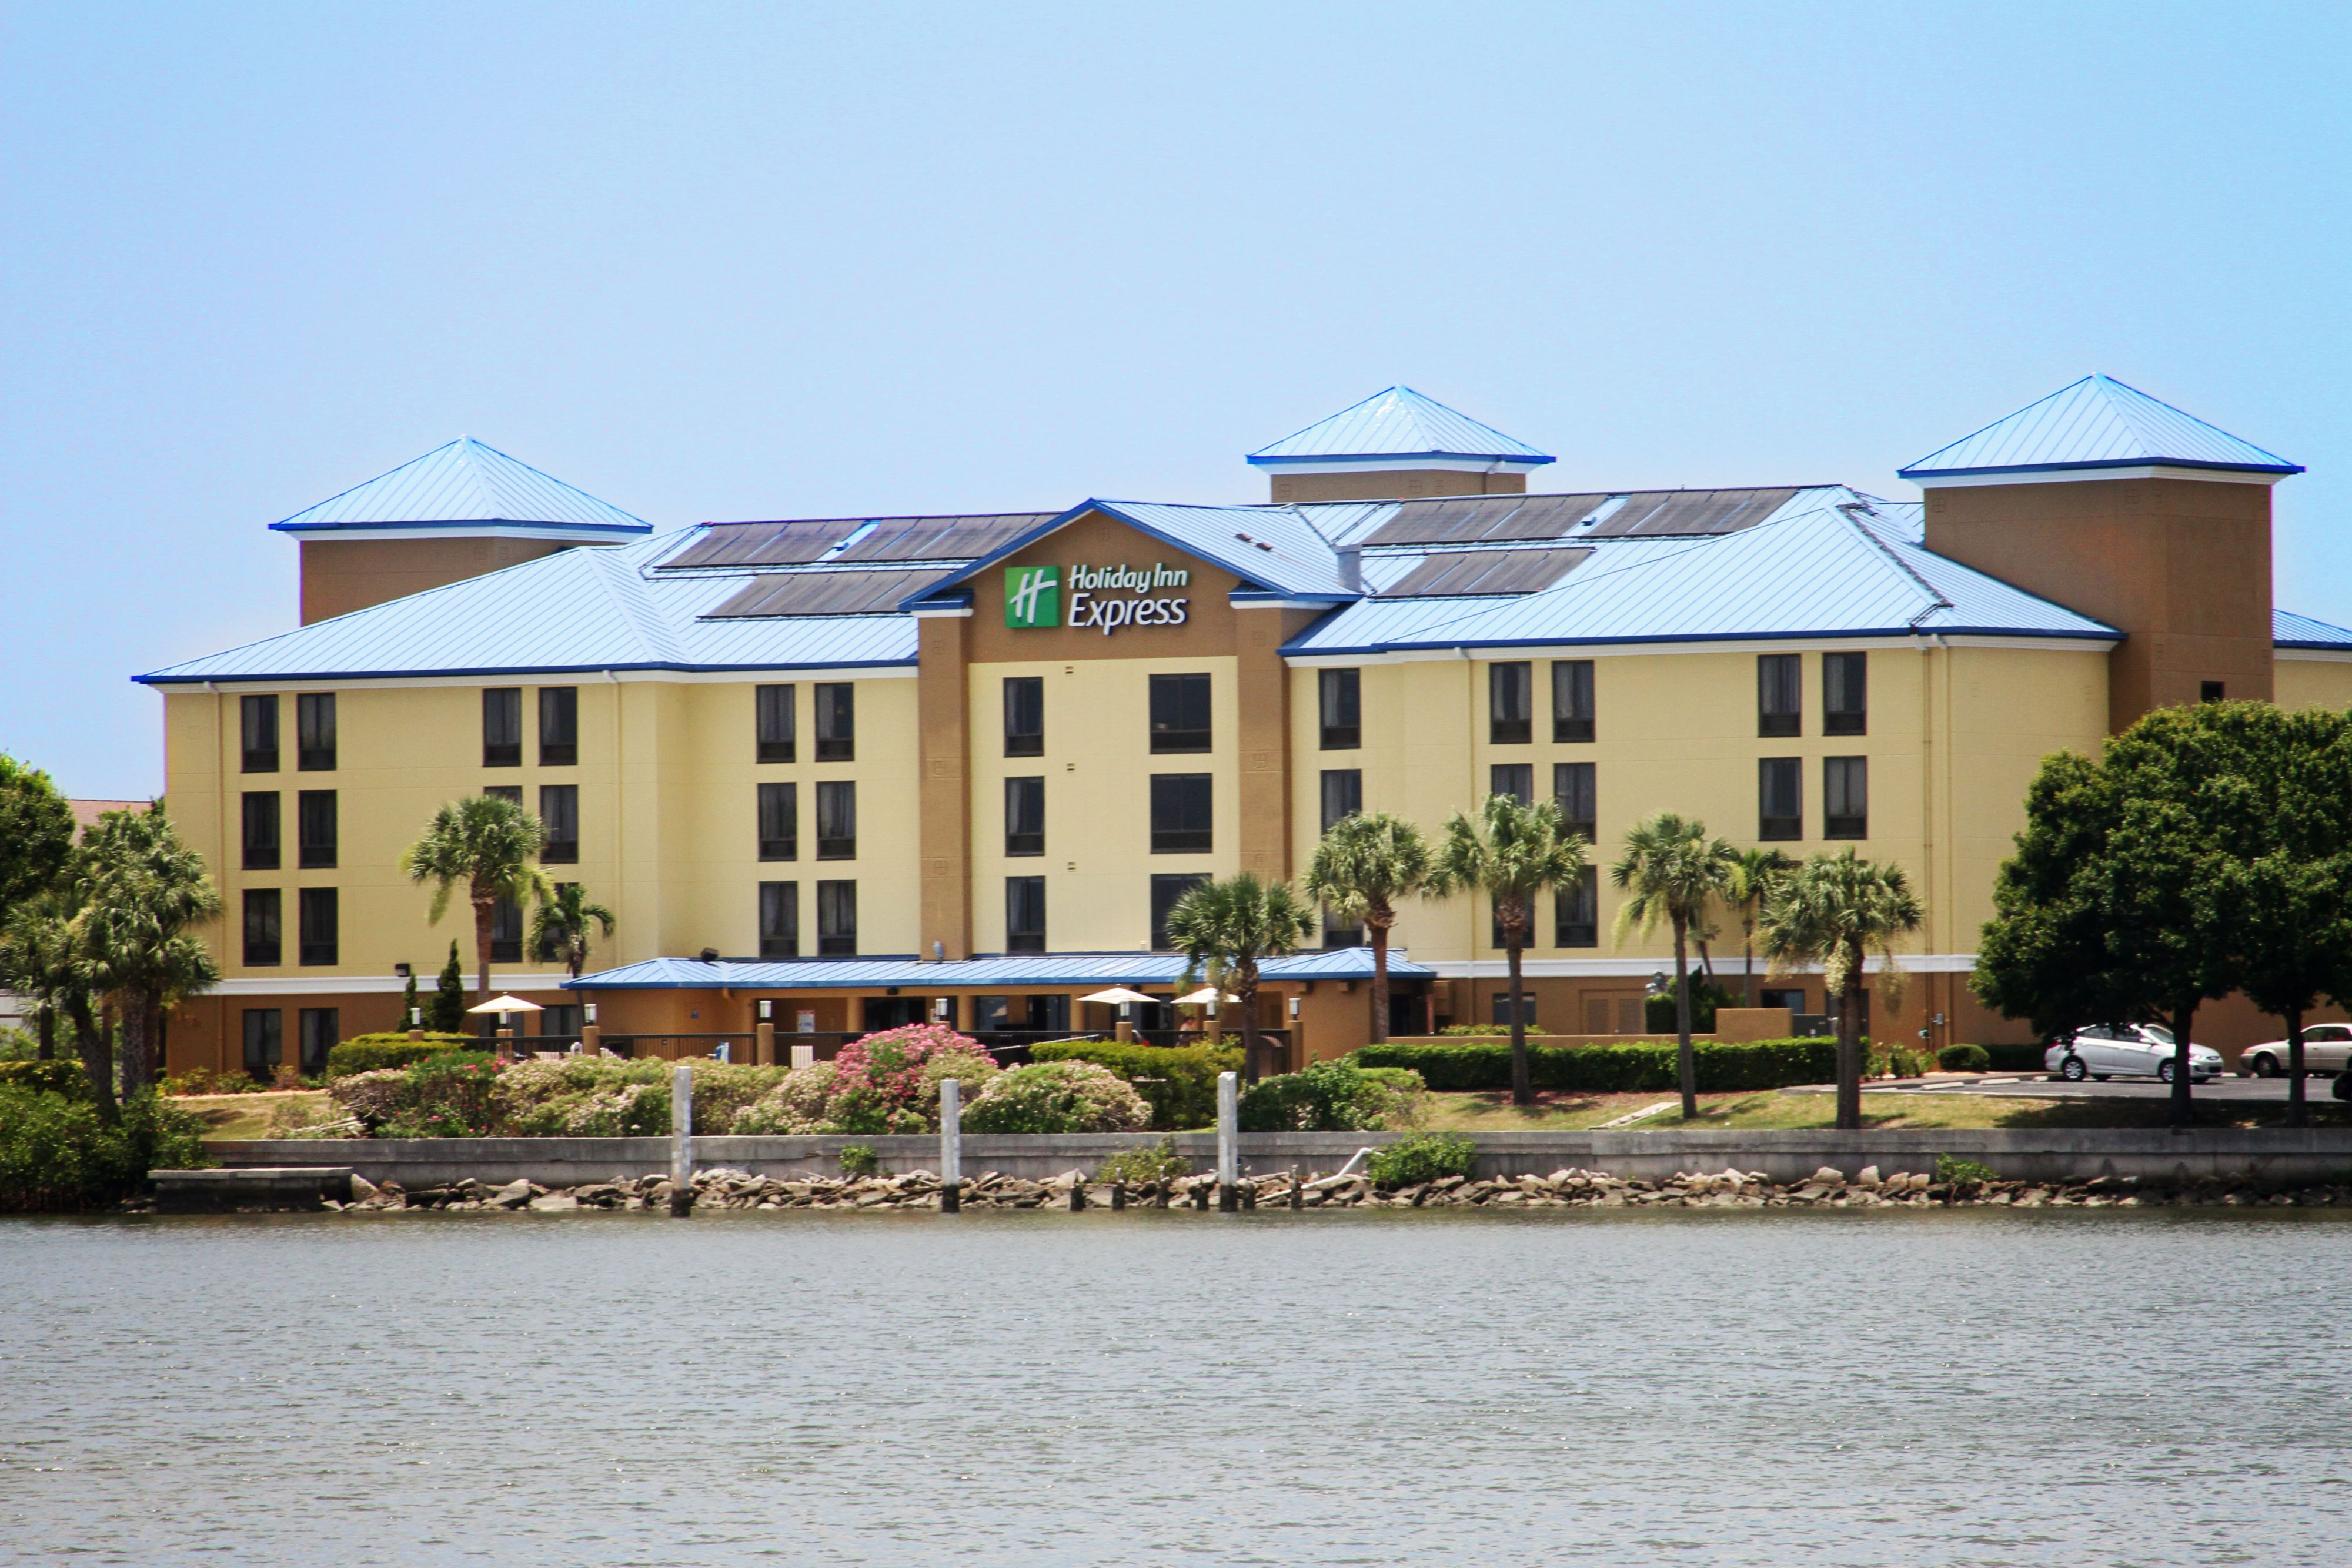 Holiday Inn Express Suites Tampa Usf Busch Gardens In Tampa Fl 33612